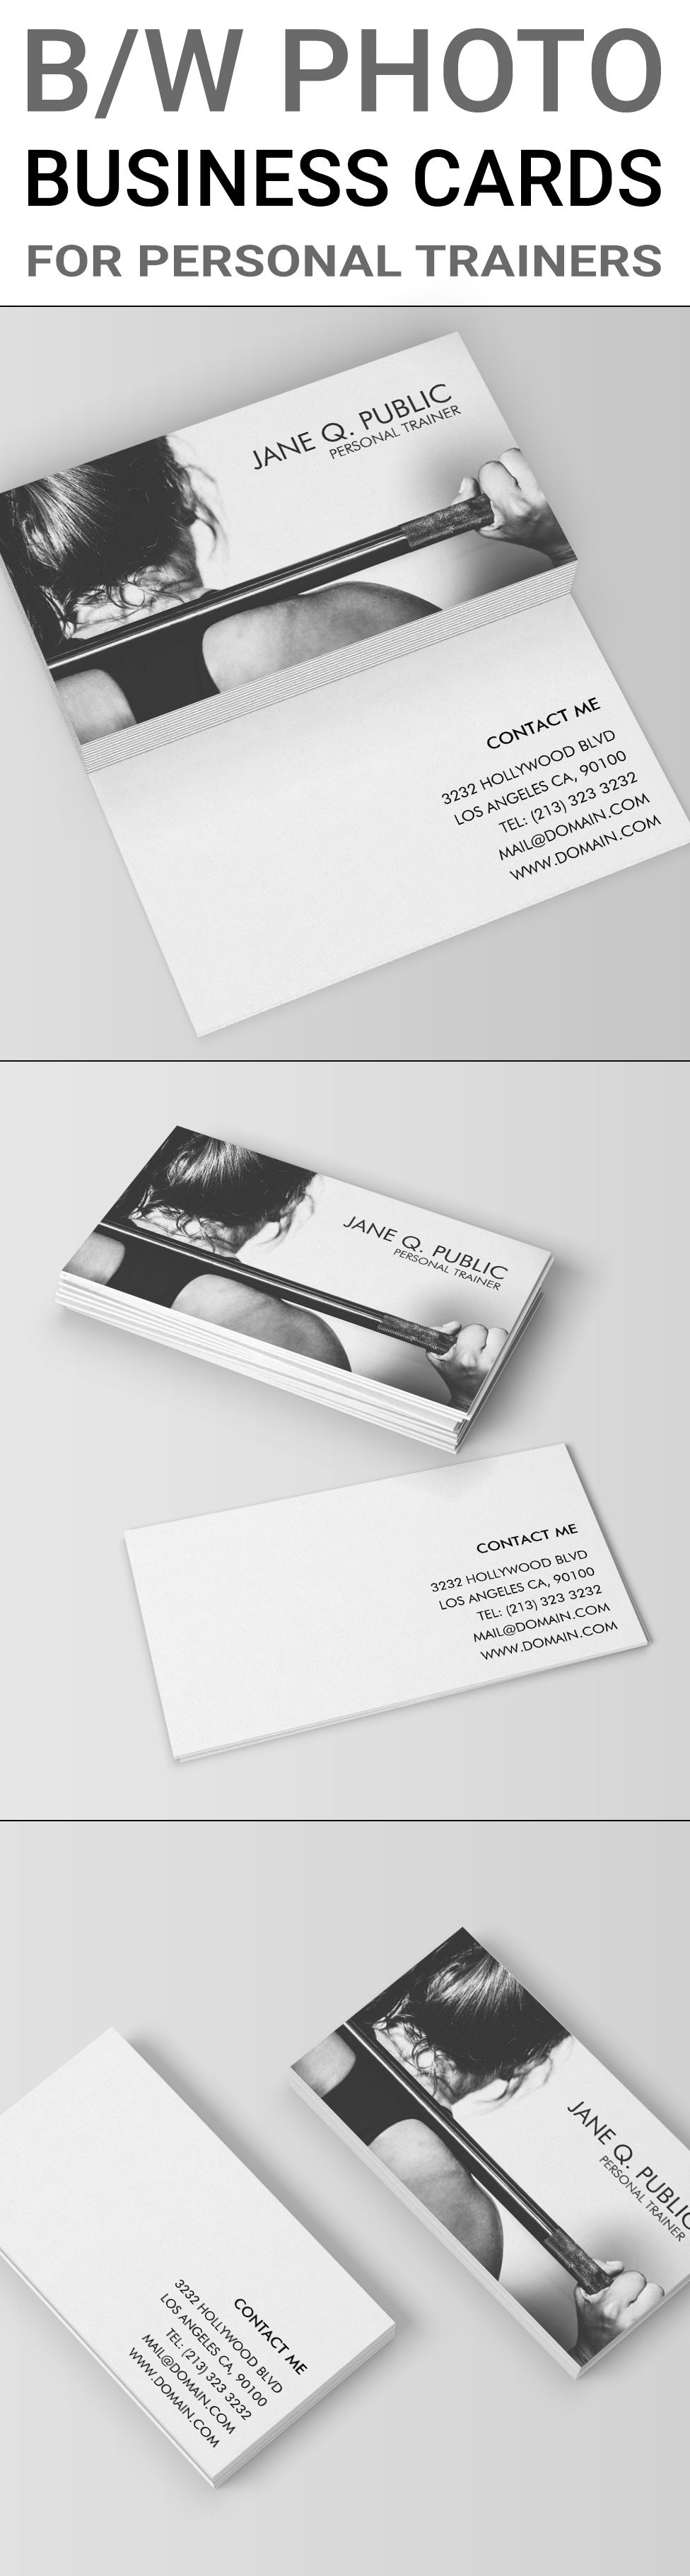 clinical psychologist psychology psi symbol business card